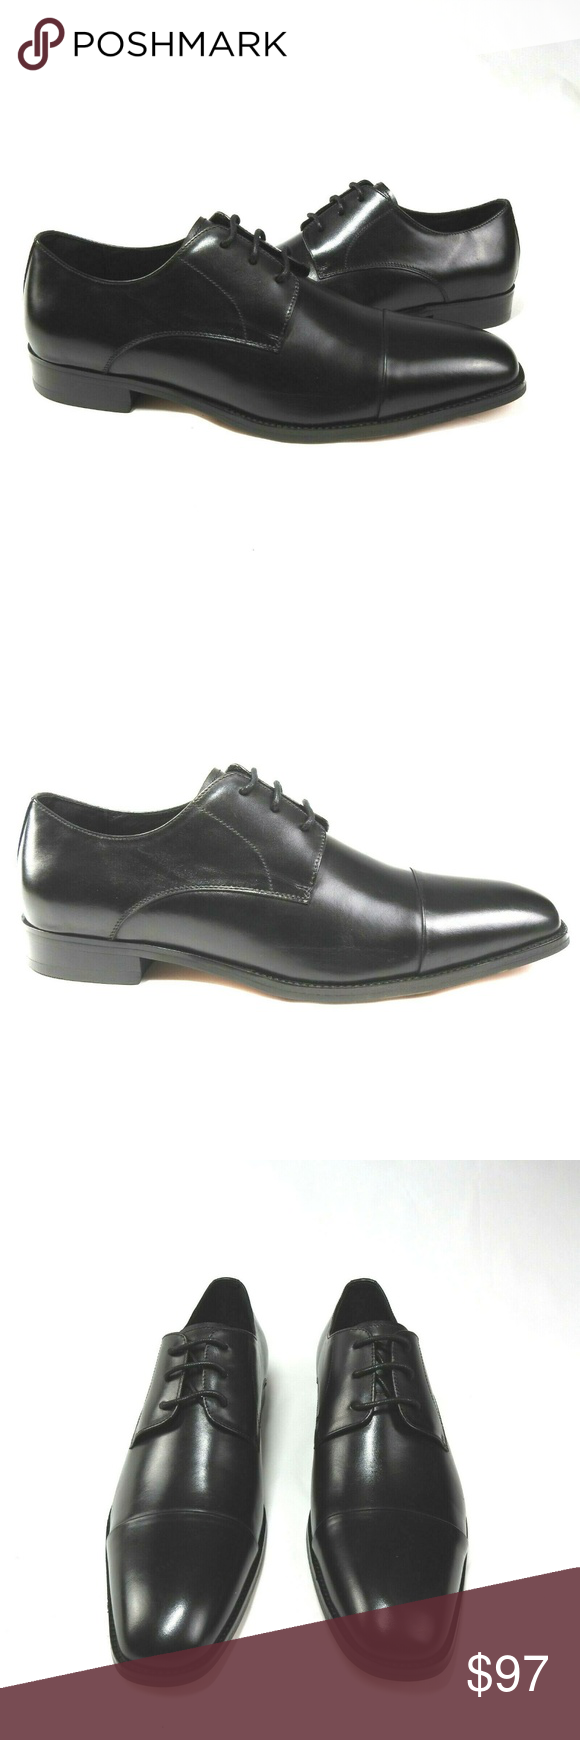 Gifennse Handmade Leather Oxford Dress Shoes Leather Oxfords Oxford Dress Shoes Dress Shoes [ 1740 x 580 Pixel ]